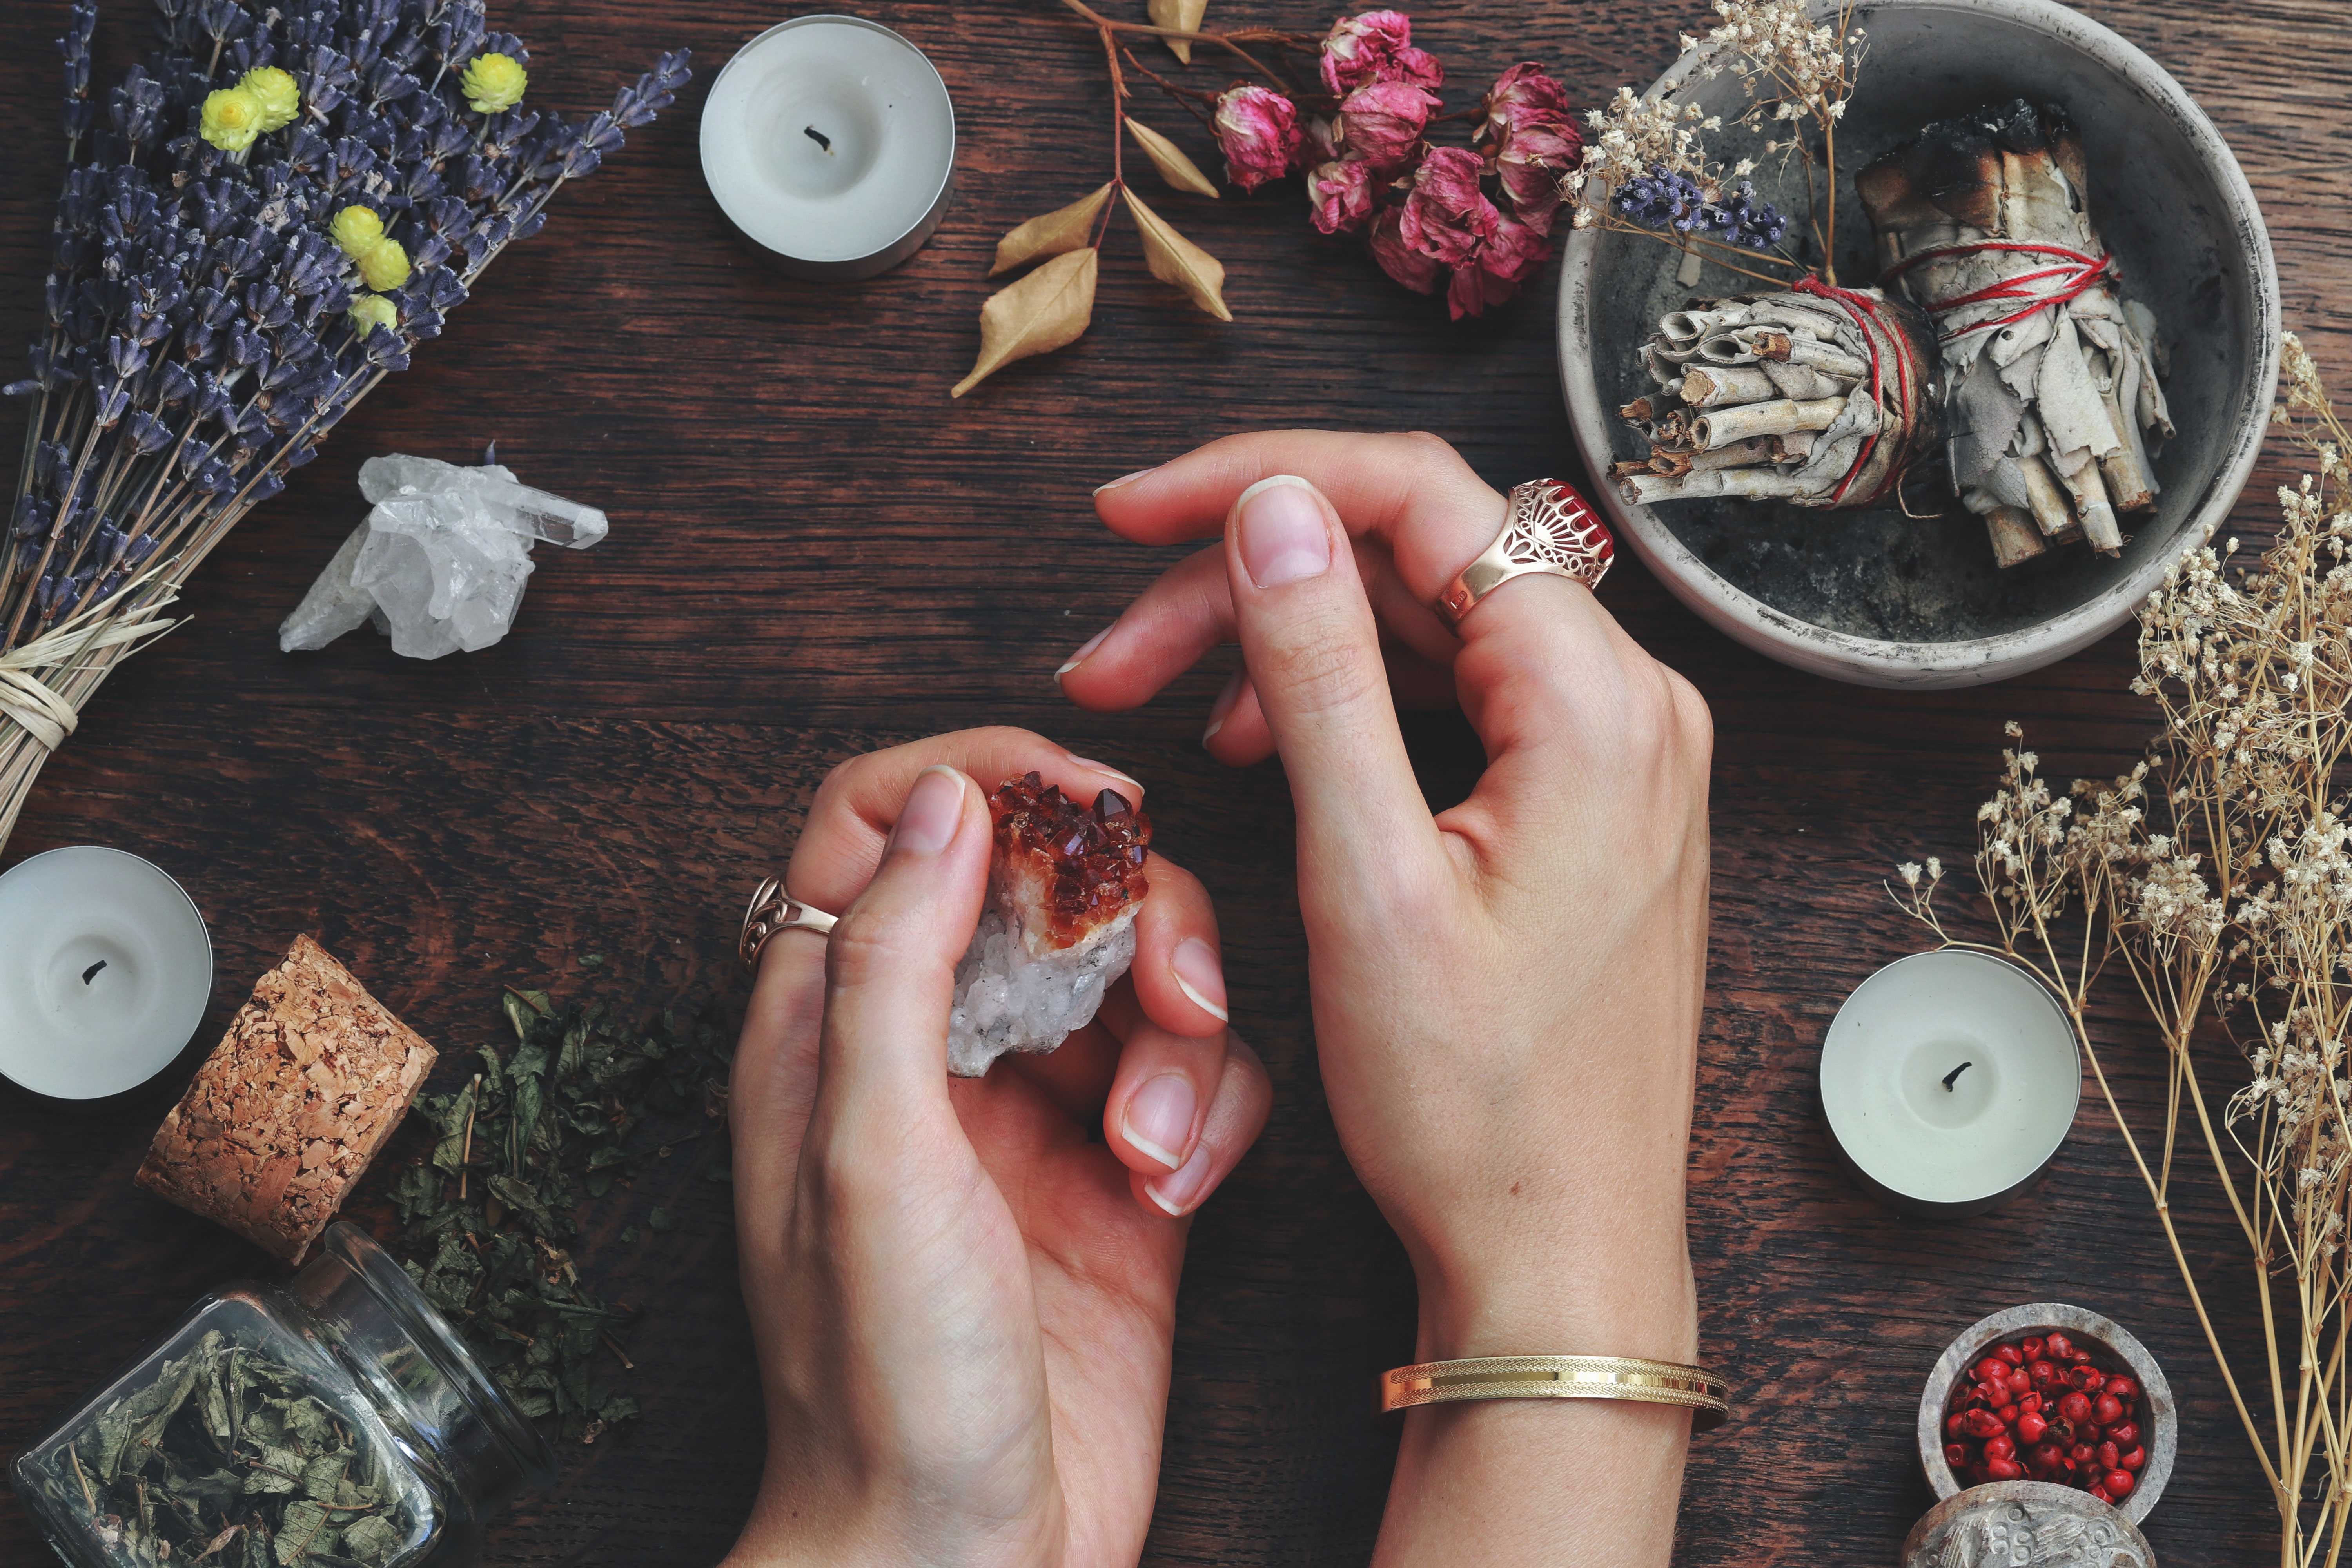 Are You Obsessed With Crystals? Here's the Online Class You Need to Take RN